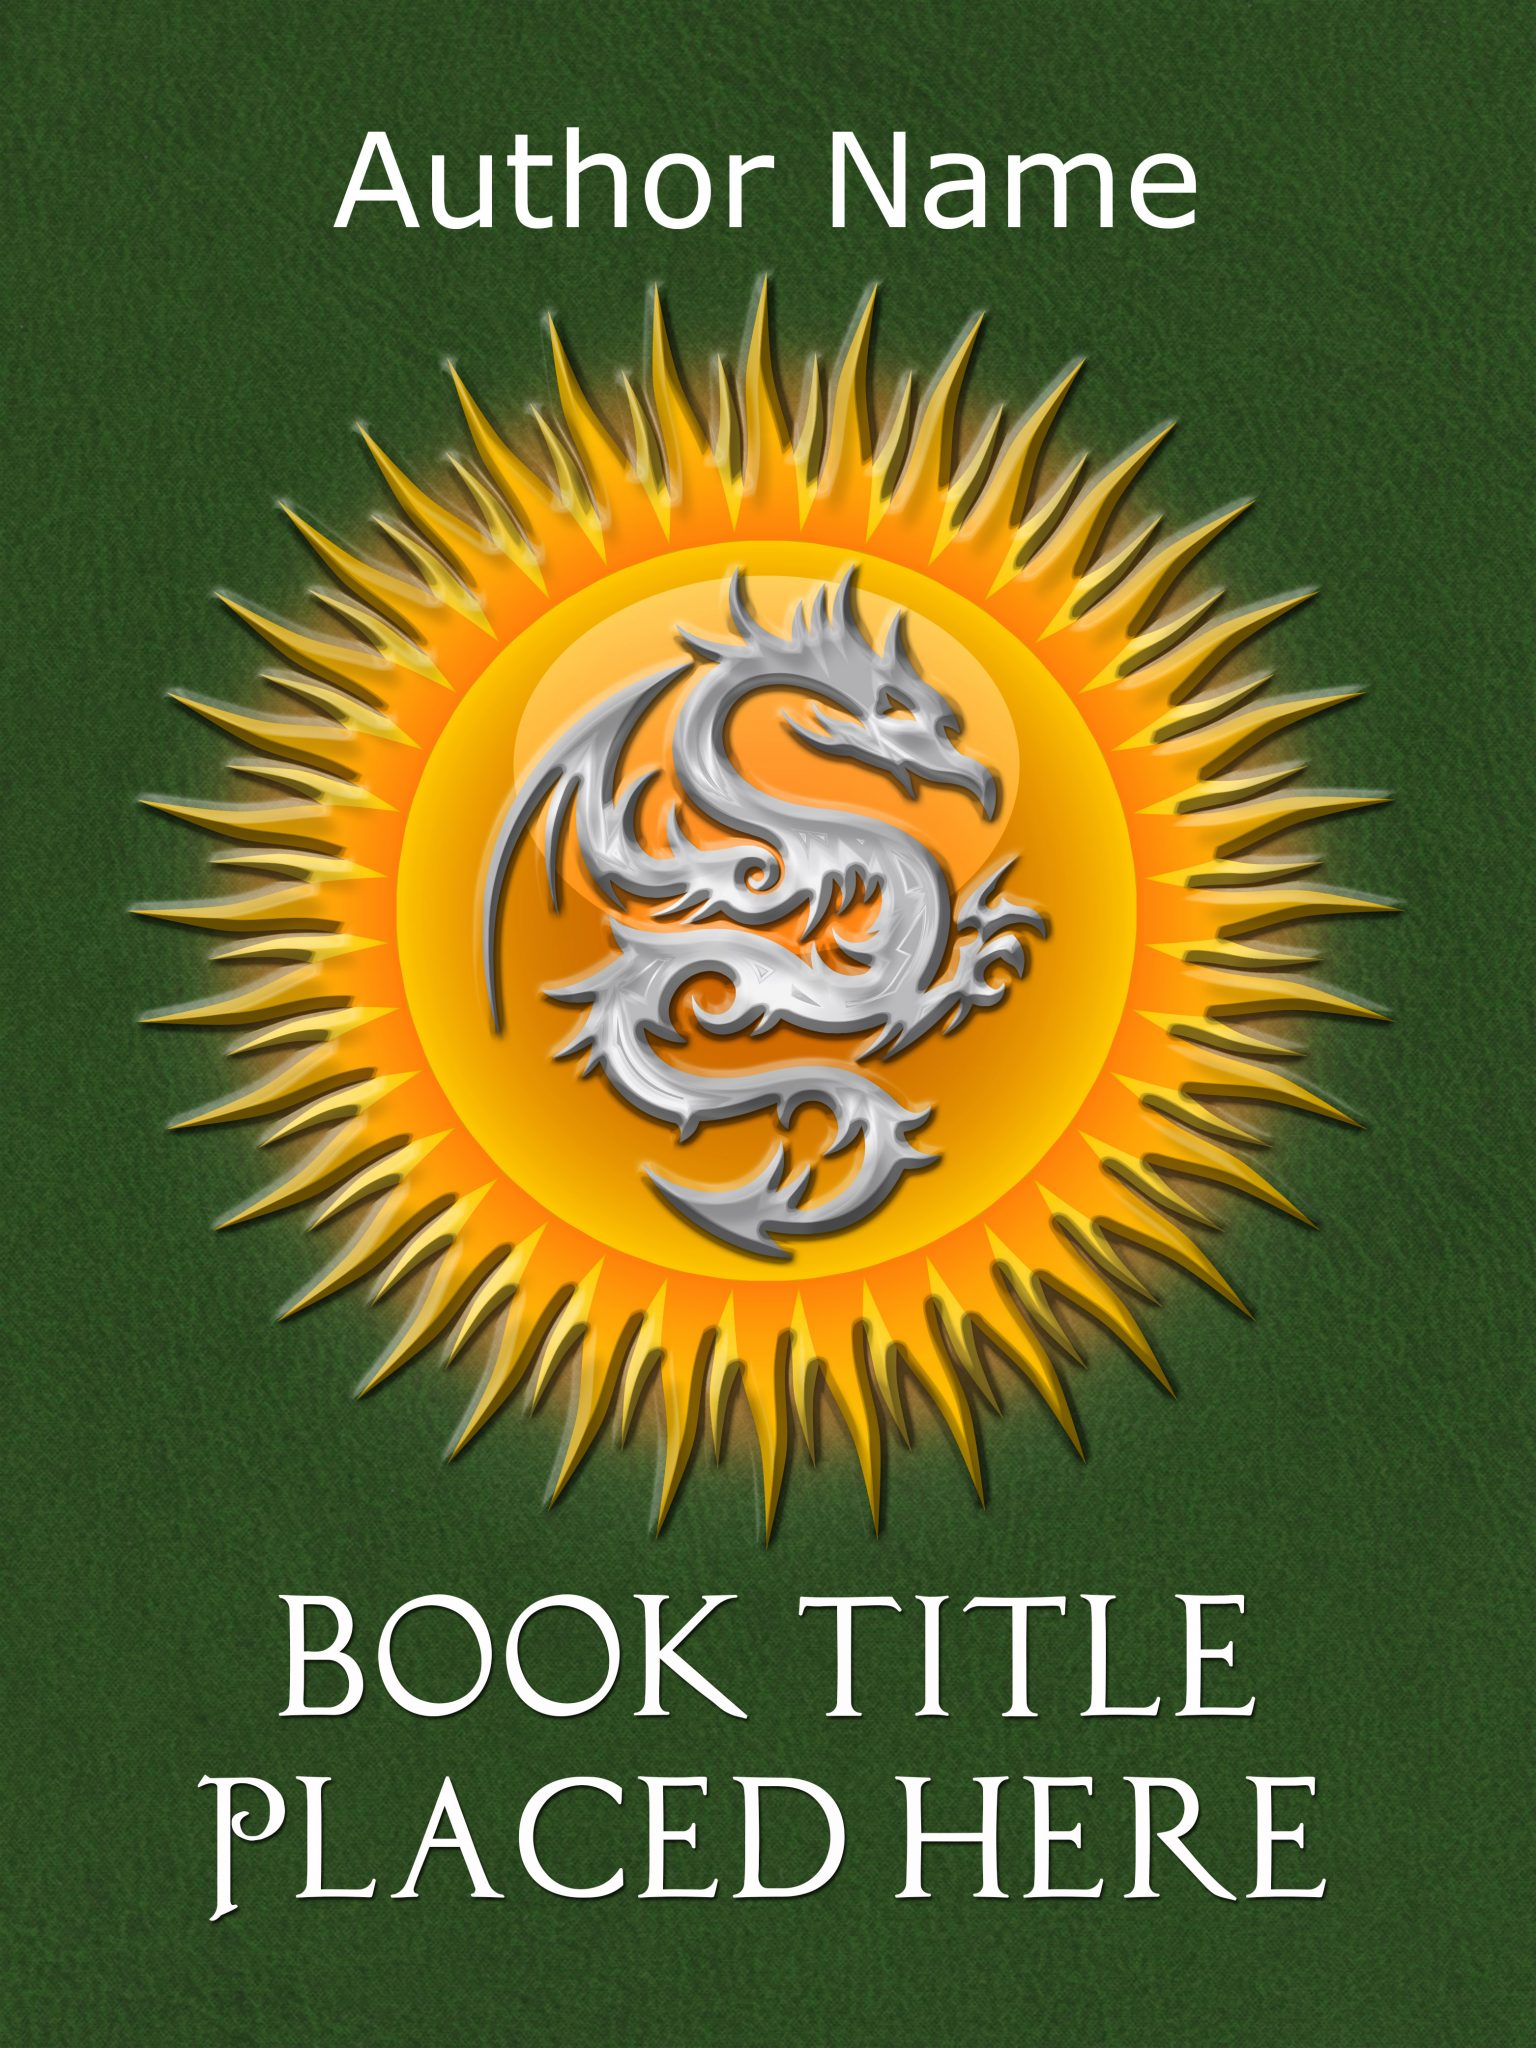 Fantasy Dragon Premade Book Cover